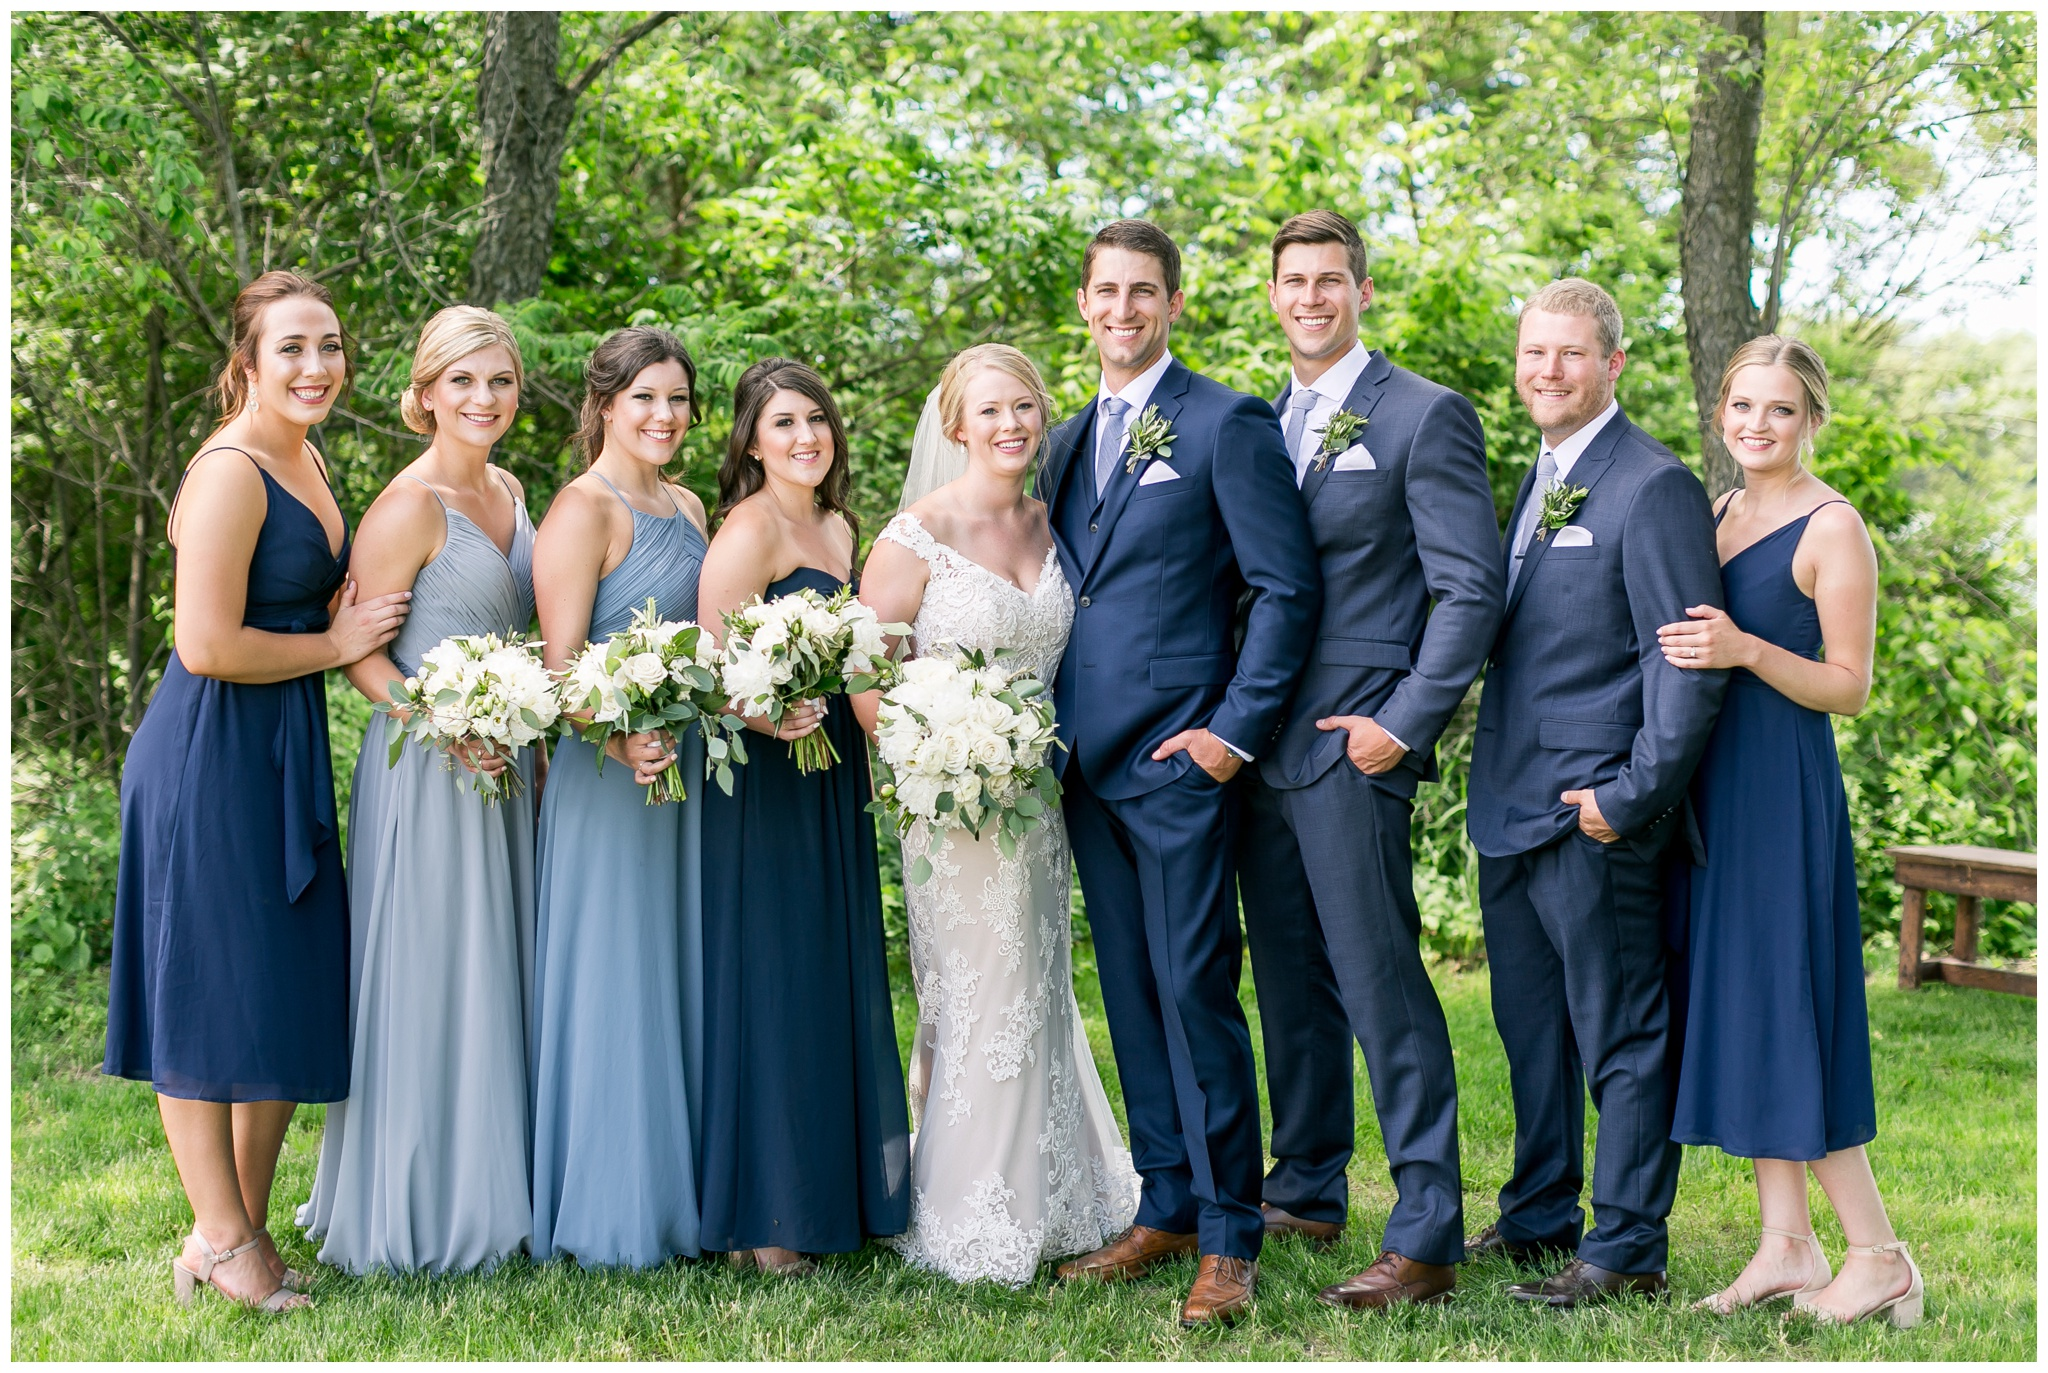 private_estate_wedding_stoughton_wisconsin_wedding_caynay_photo_3854.jpg